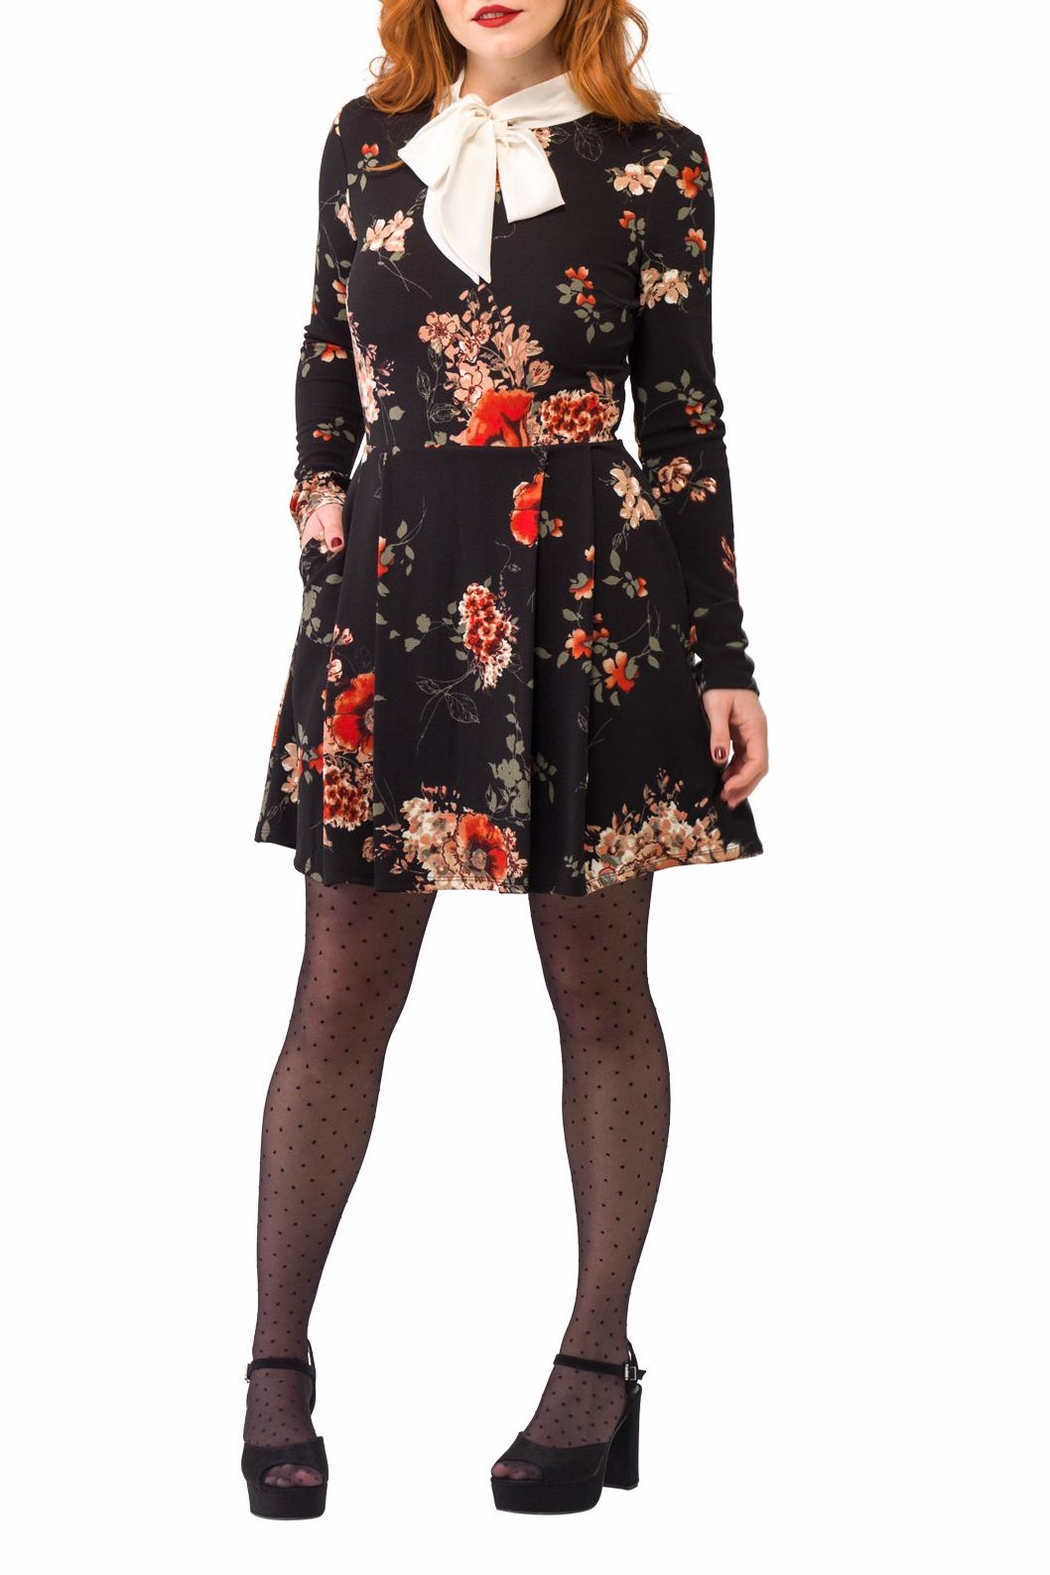 Smak Parlour Long-Sleeve Floral Dress - Front Cropped Image